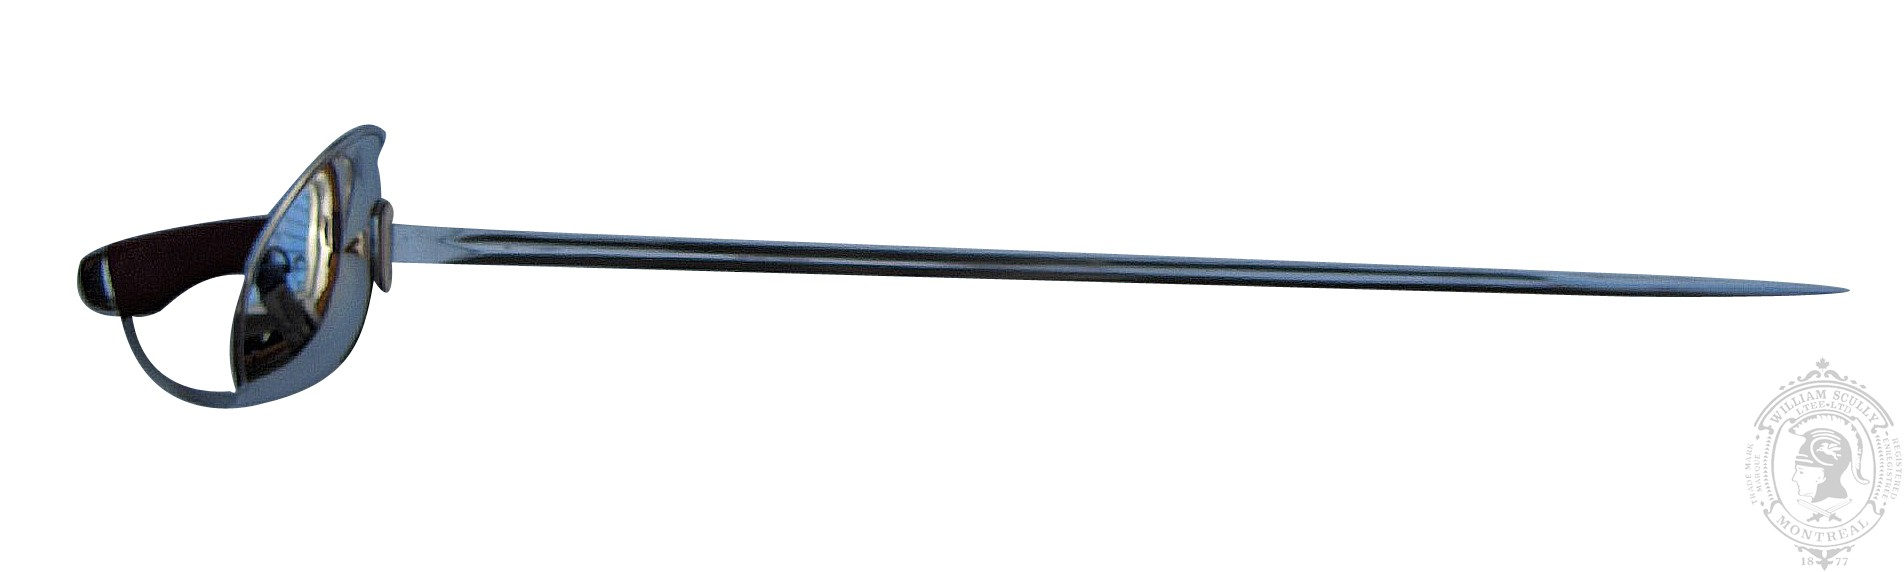 Cavalry Trooper Sabre (1908, Mark I) (DND REGULATION)